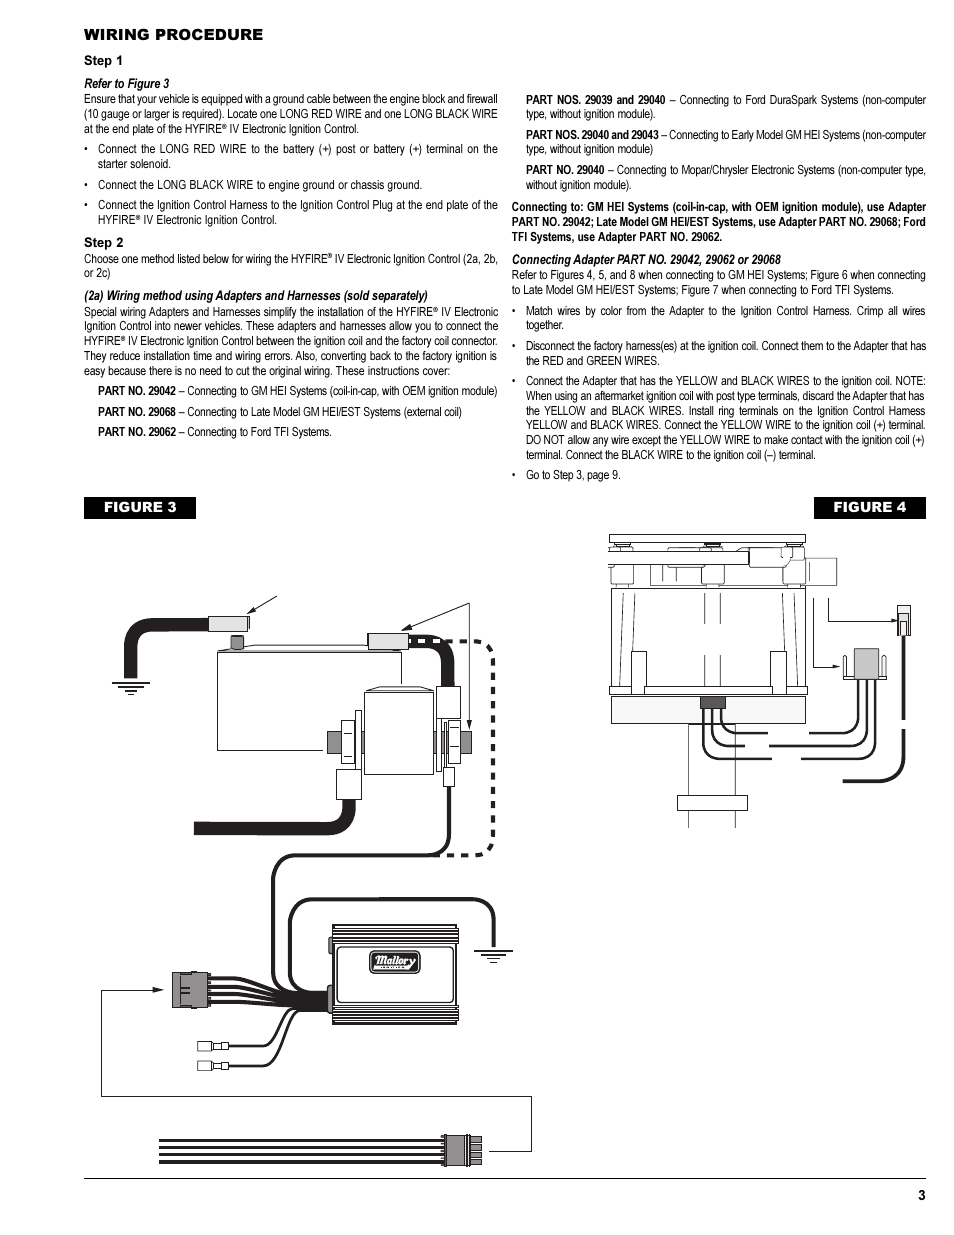 mallory ignition mallory hyfire iv series ignition system 692_697 page3?resize\\\\\\\\\\\\\\\\\\\\\\\\\\\=665%2C861 air alarm wiring diagram 2001 international air wiring diagrams  at suagrazia.org